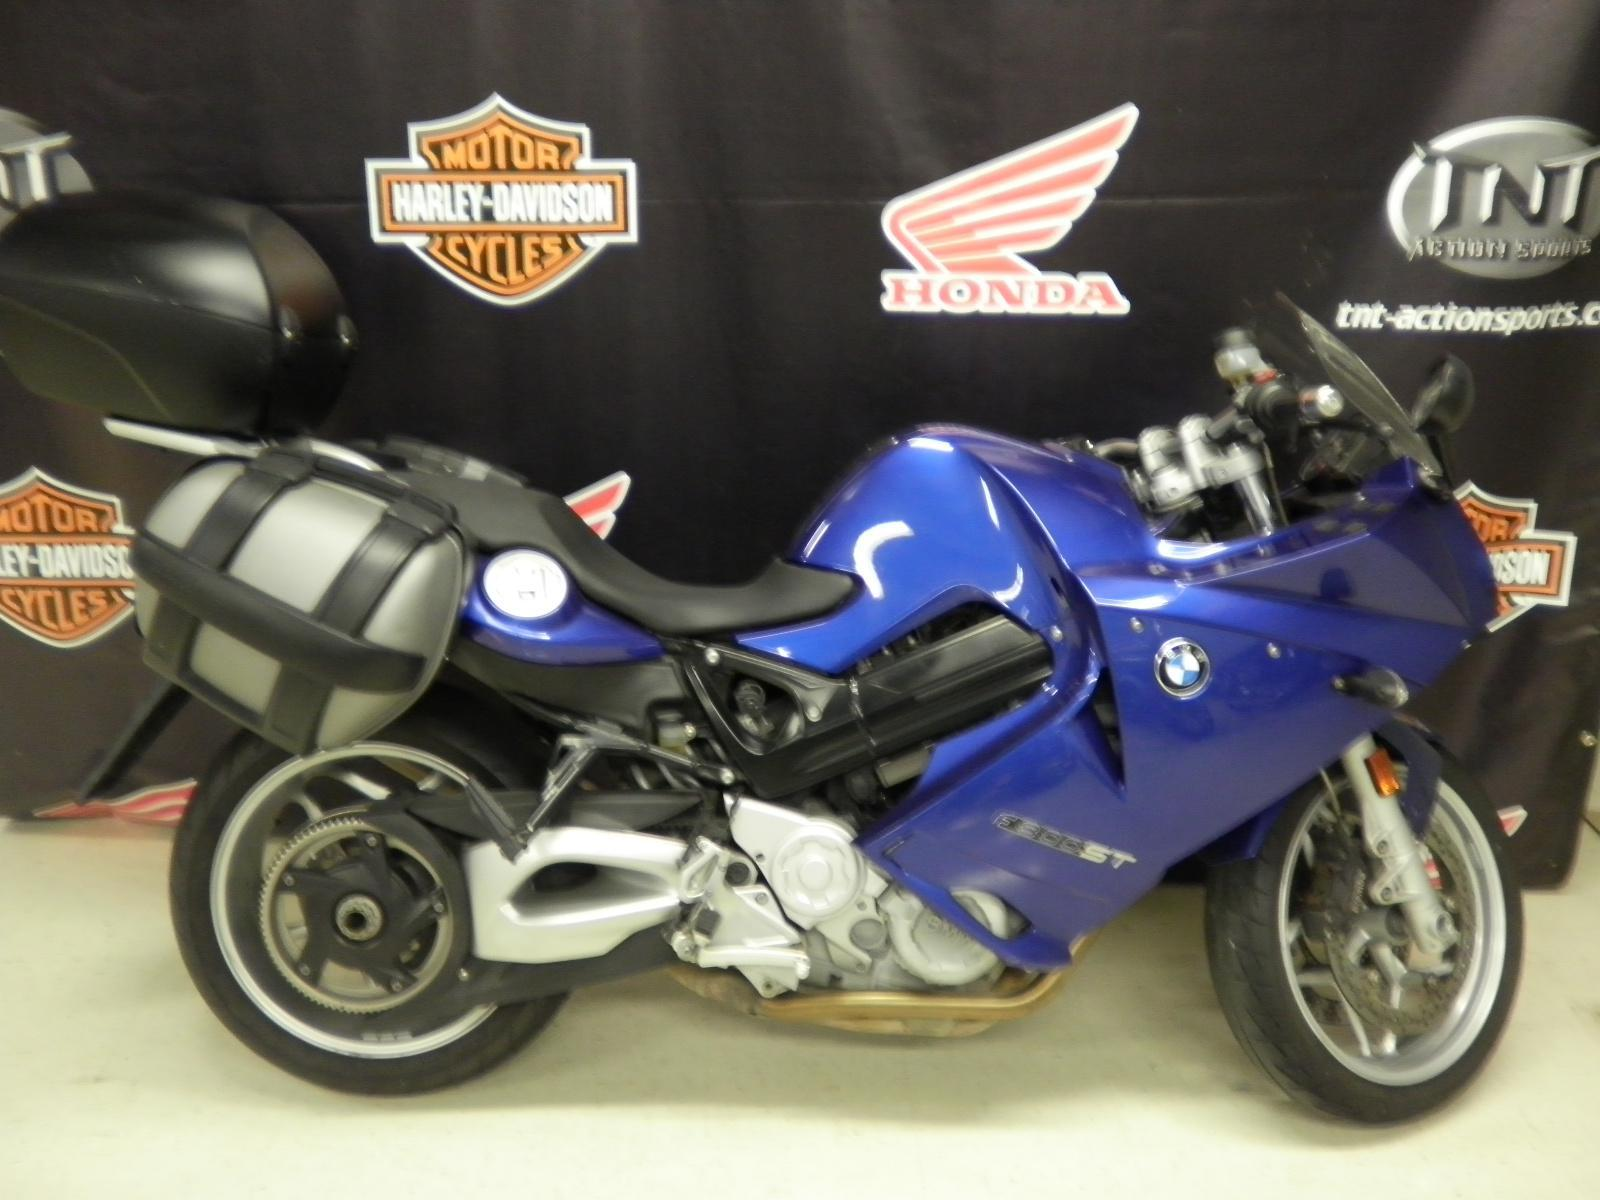 Used Inventory Smith Brothers Honda Quincy, IL 217 214-5005